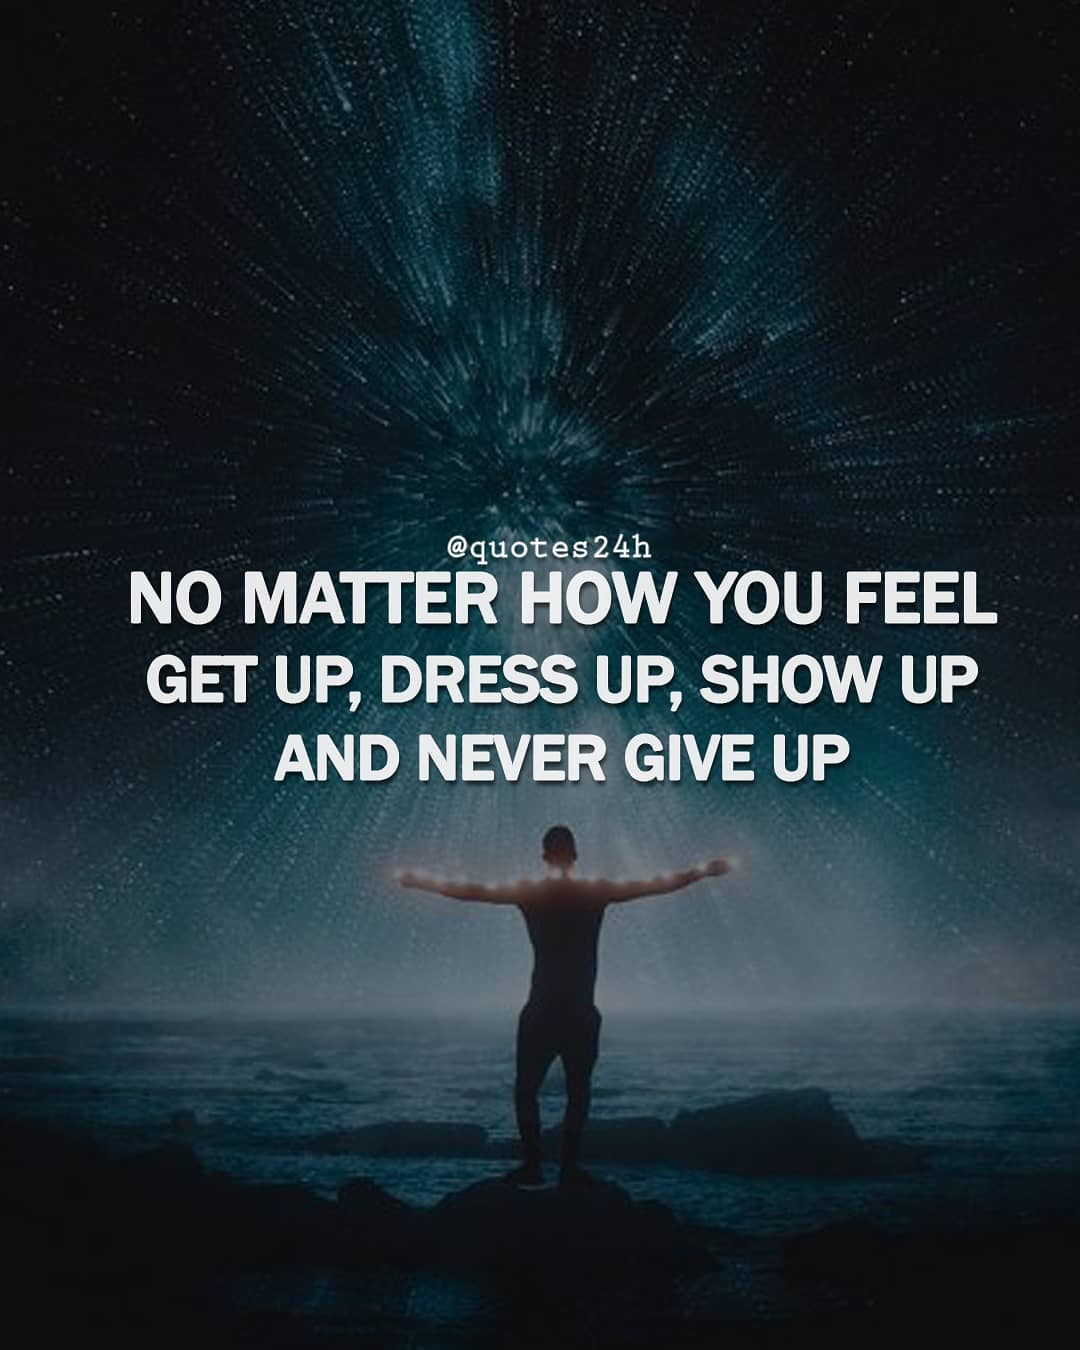 Get Up Quote : quote, Matter, Dress, Never, Quote, Quotes24h